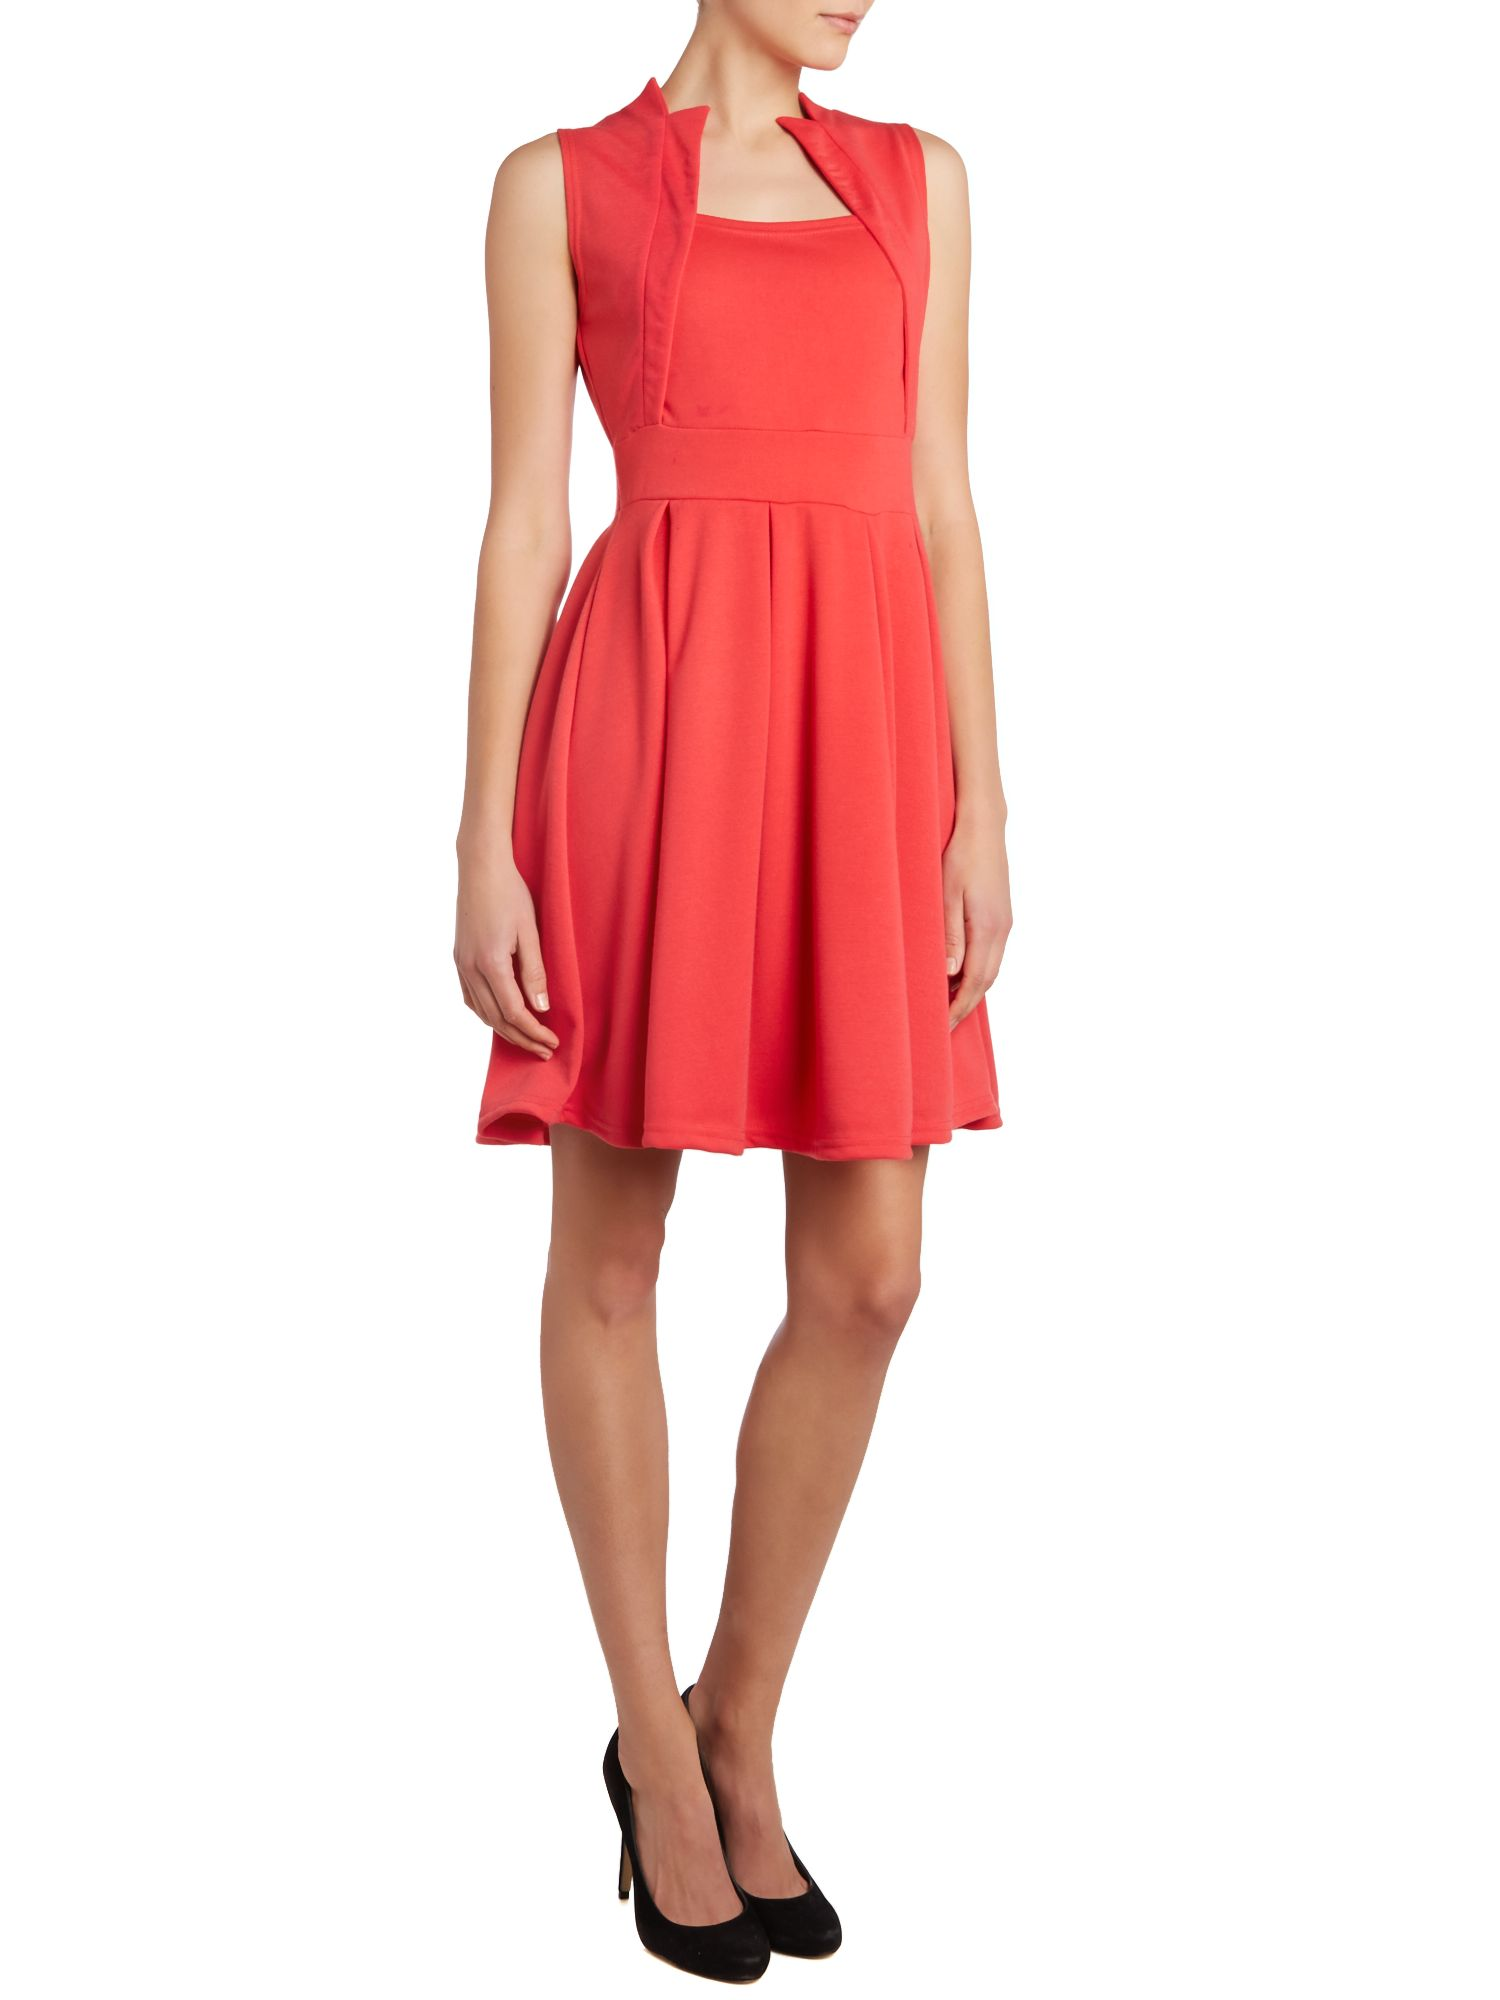 Square neck fit and flare dress